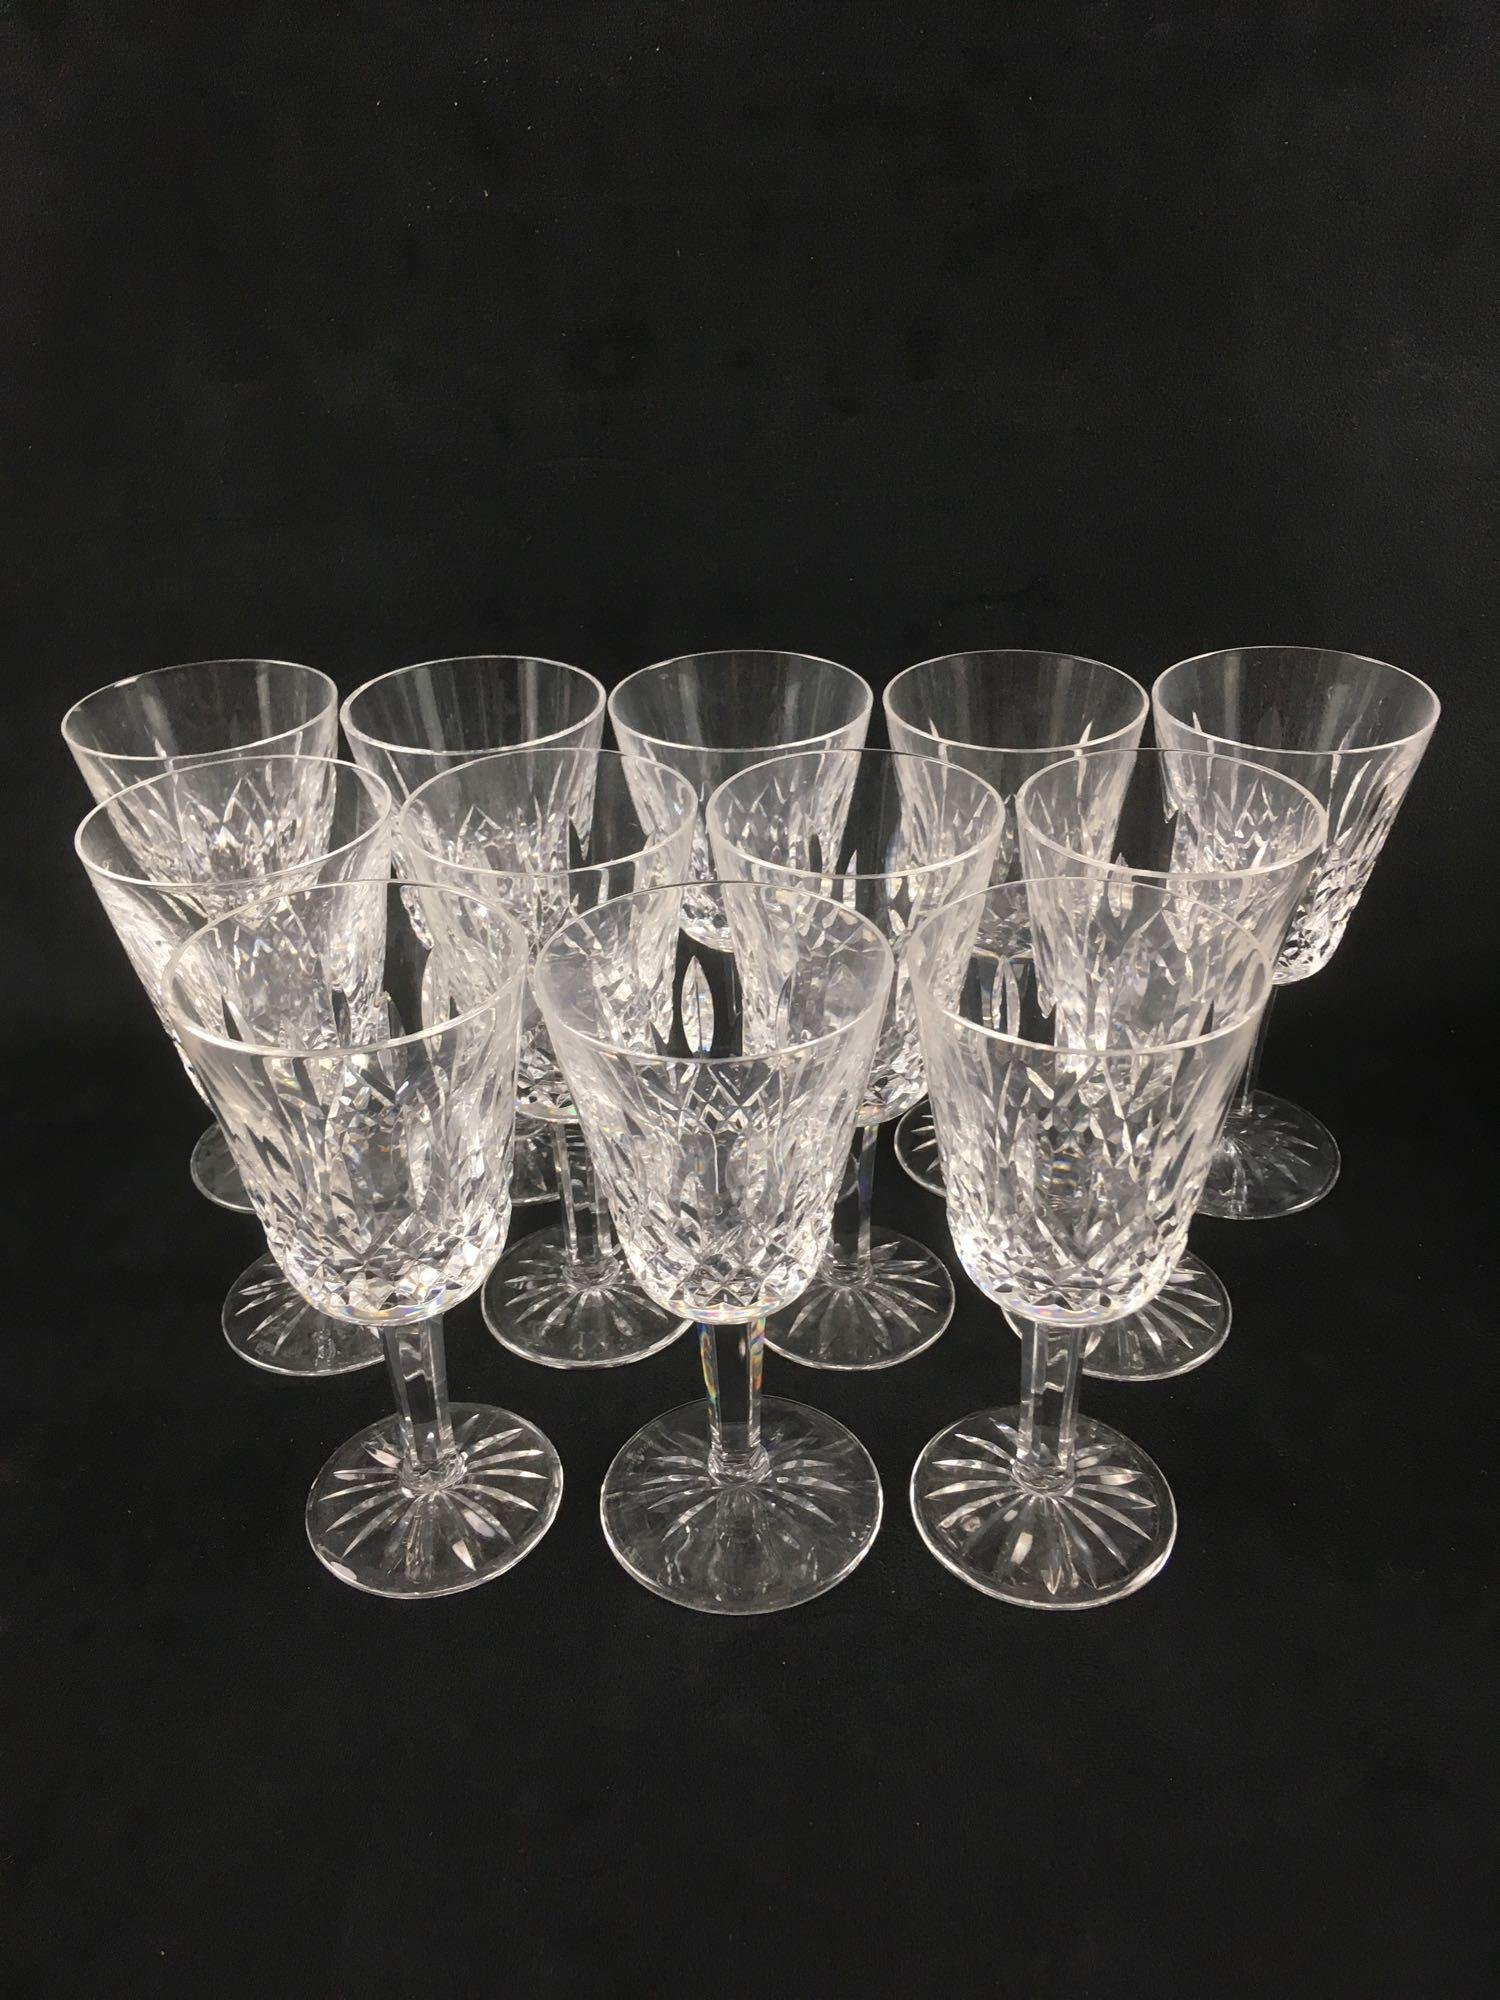 12 Signed Waterford Crystal Lismore Wine Glasses